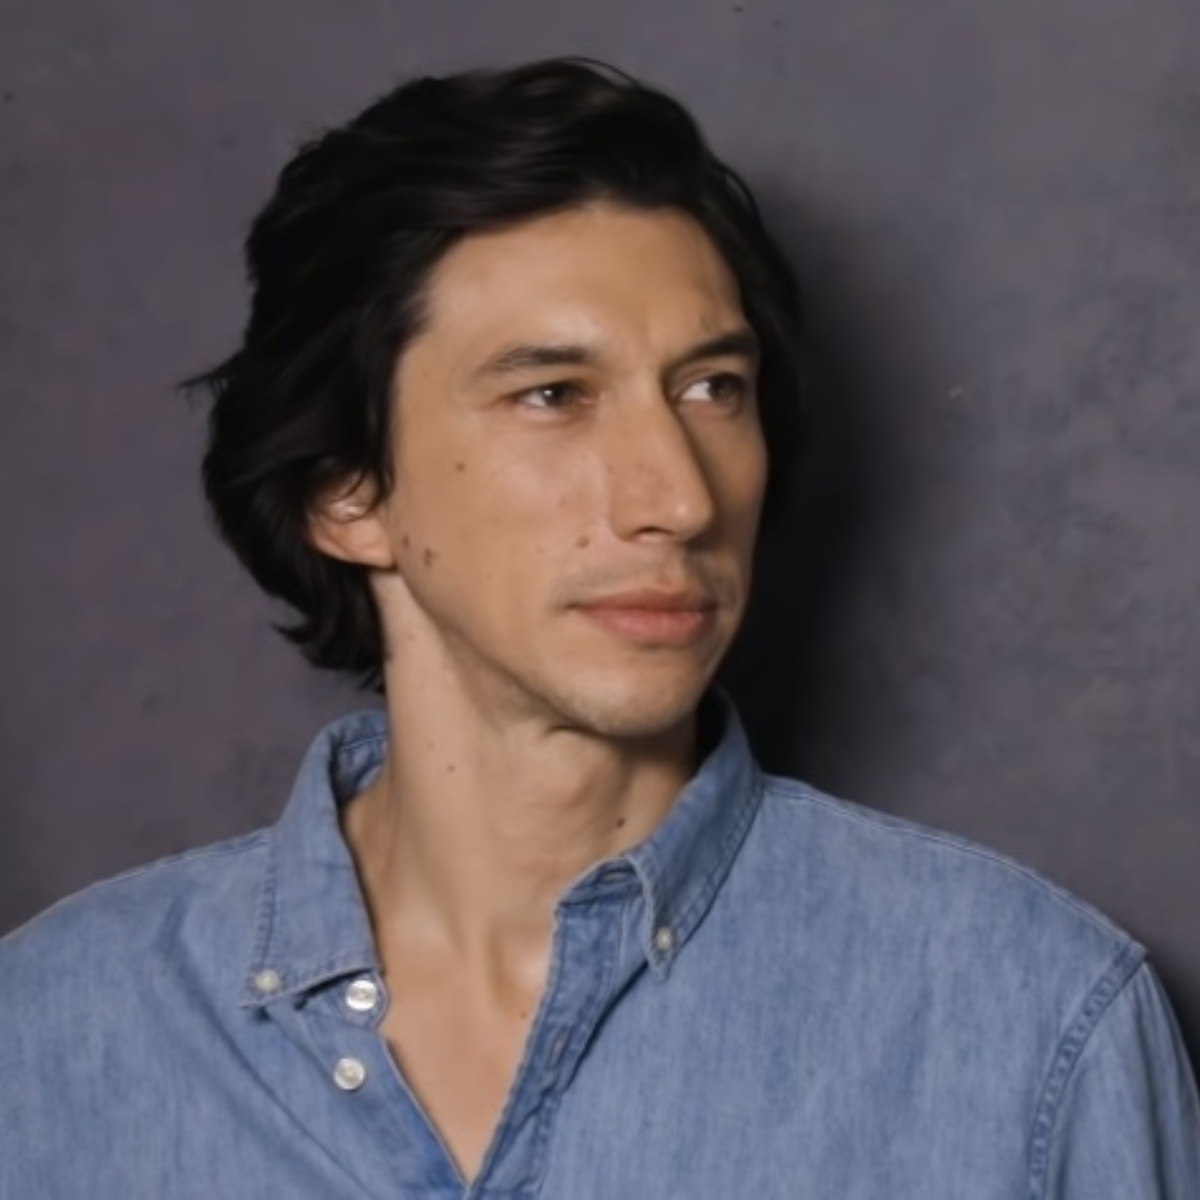 Star Wars: The Rise of Skywalker: Adam Driver opens up about the difficulties of playing Kylo Ren